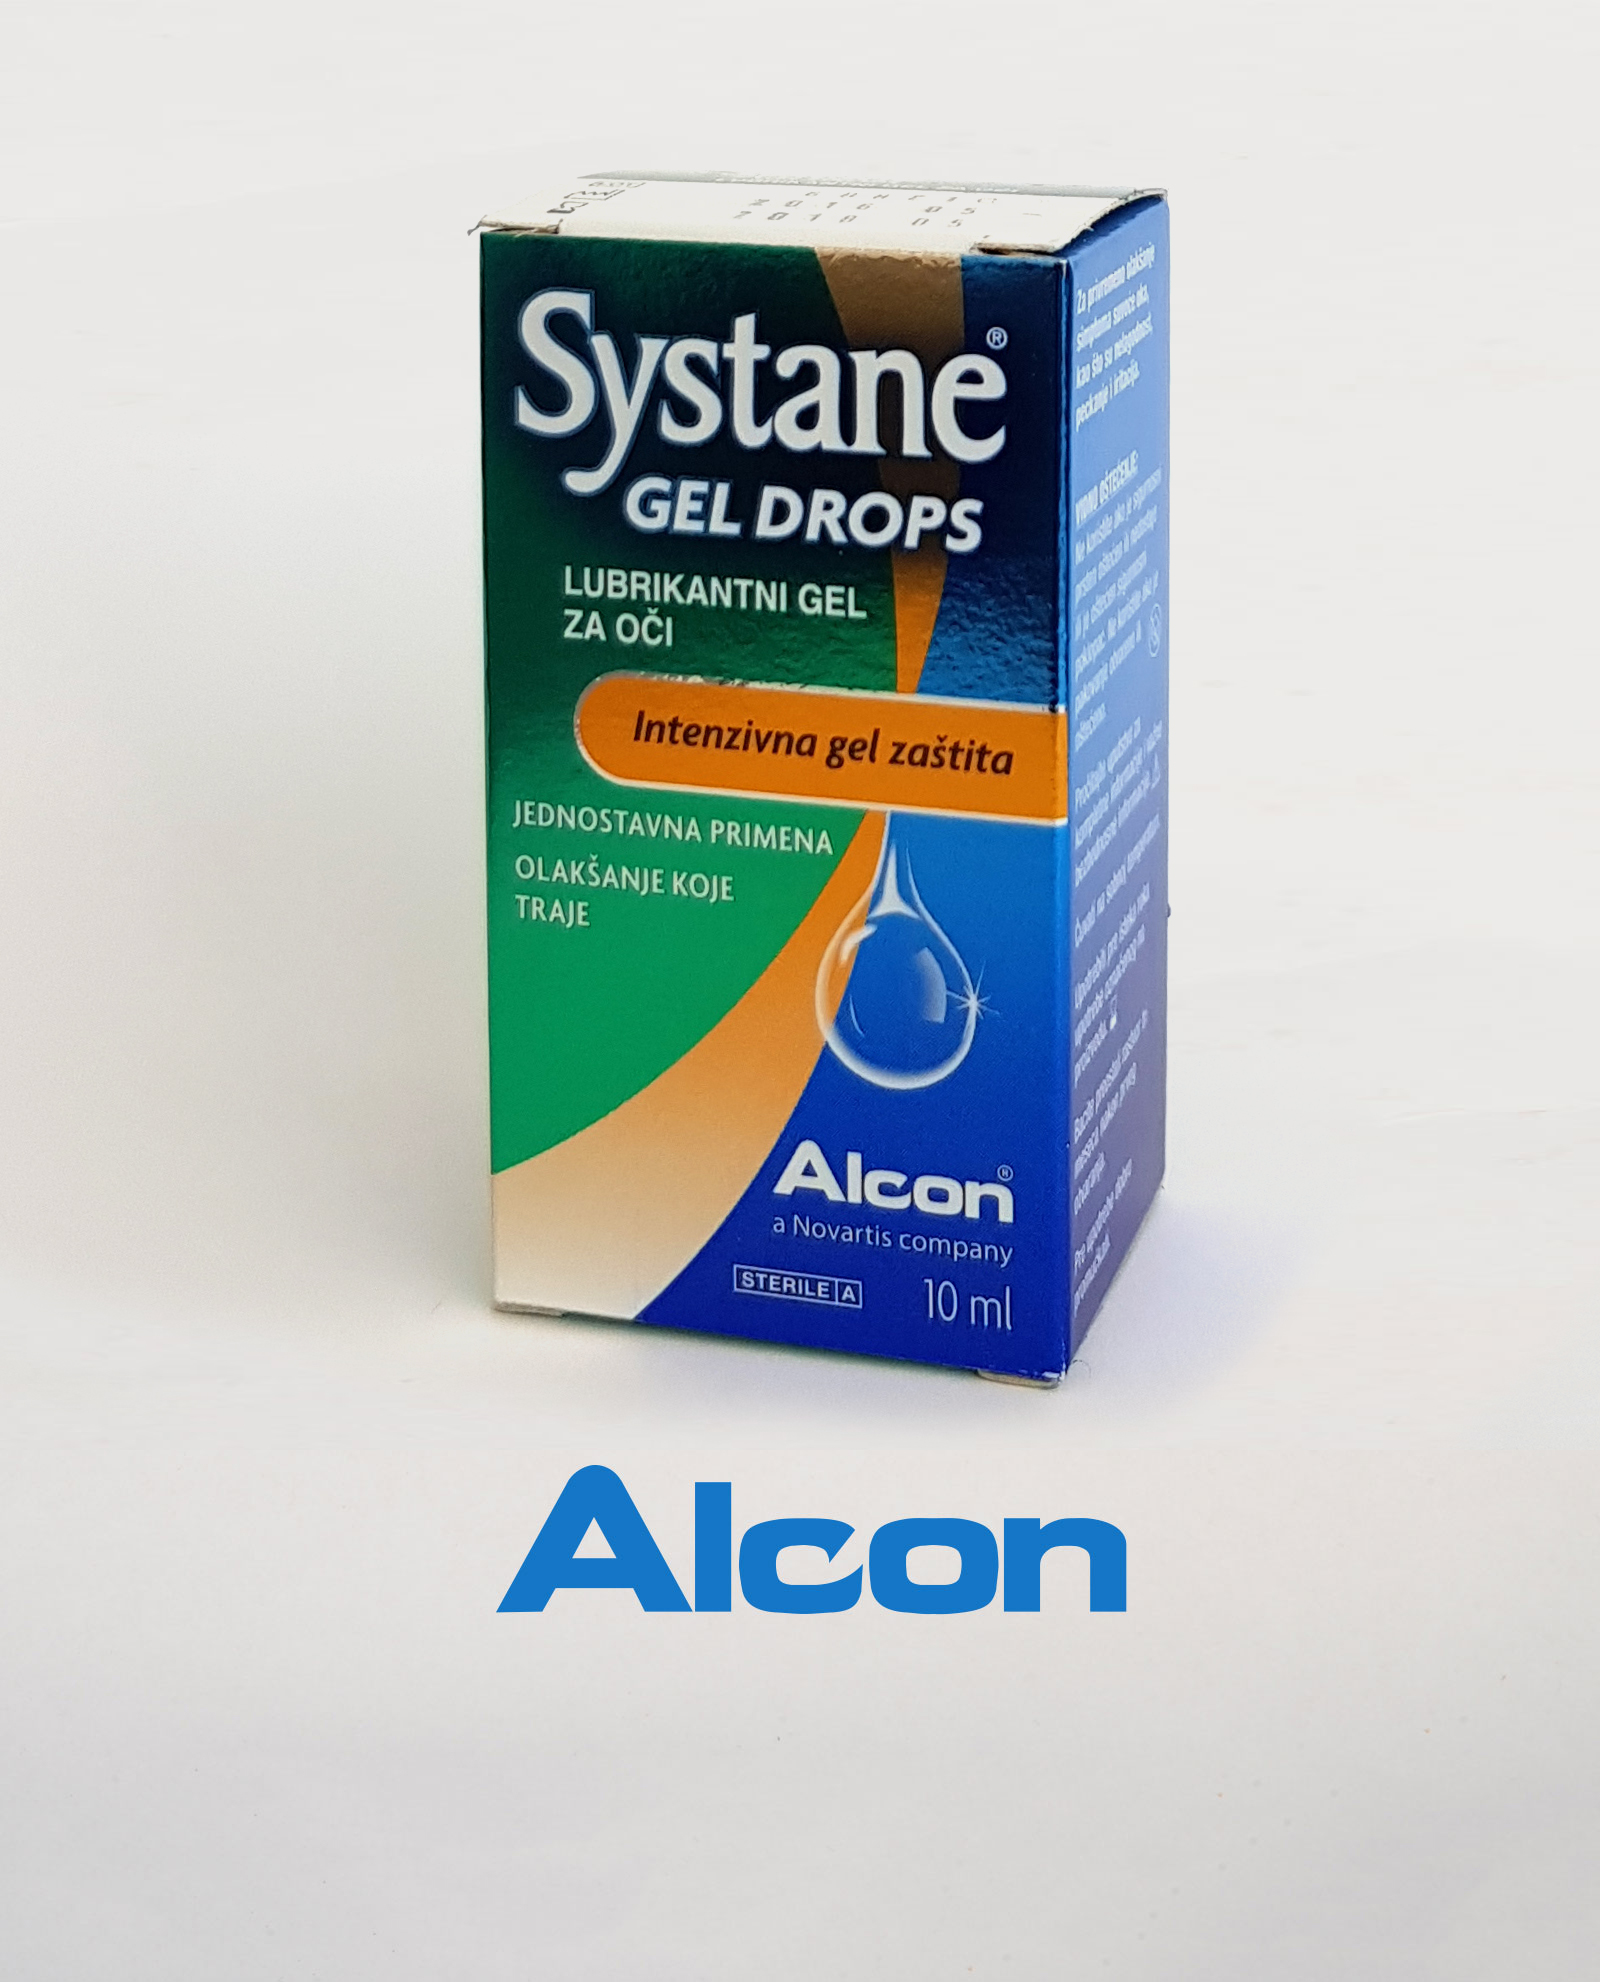 Systane-Gel-Drops-Pack